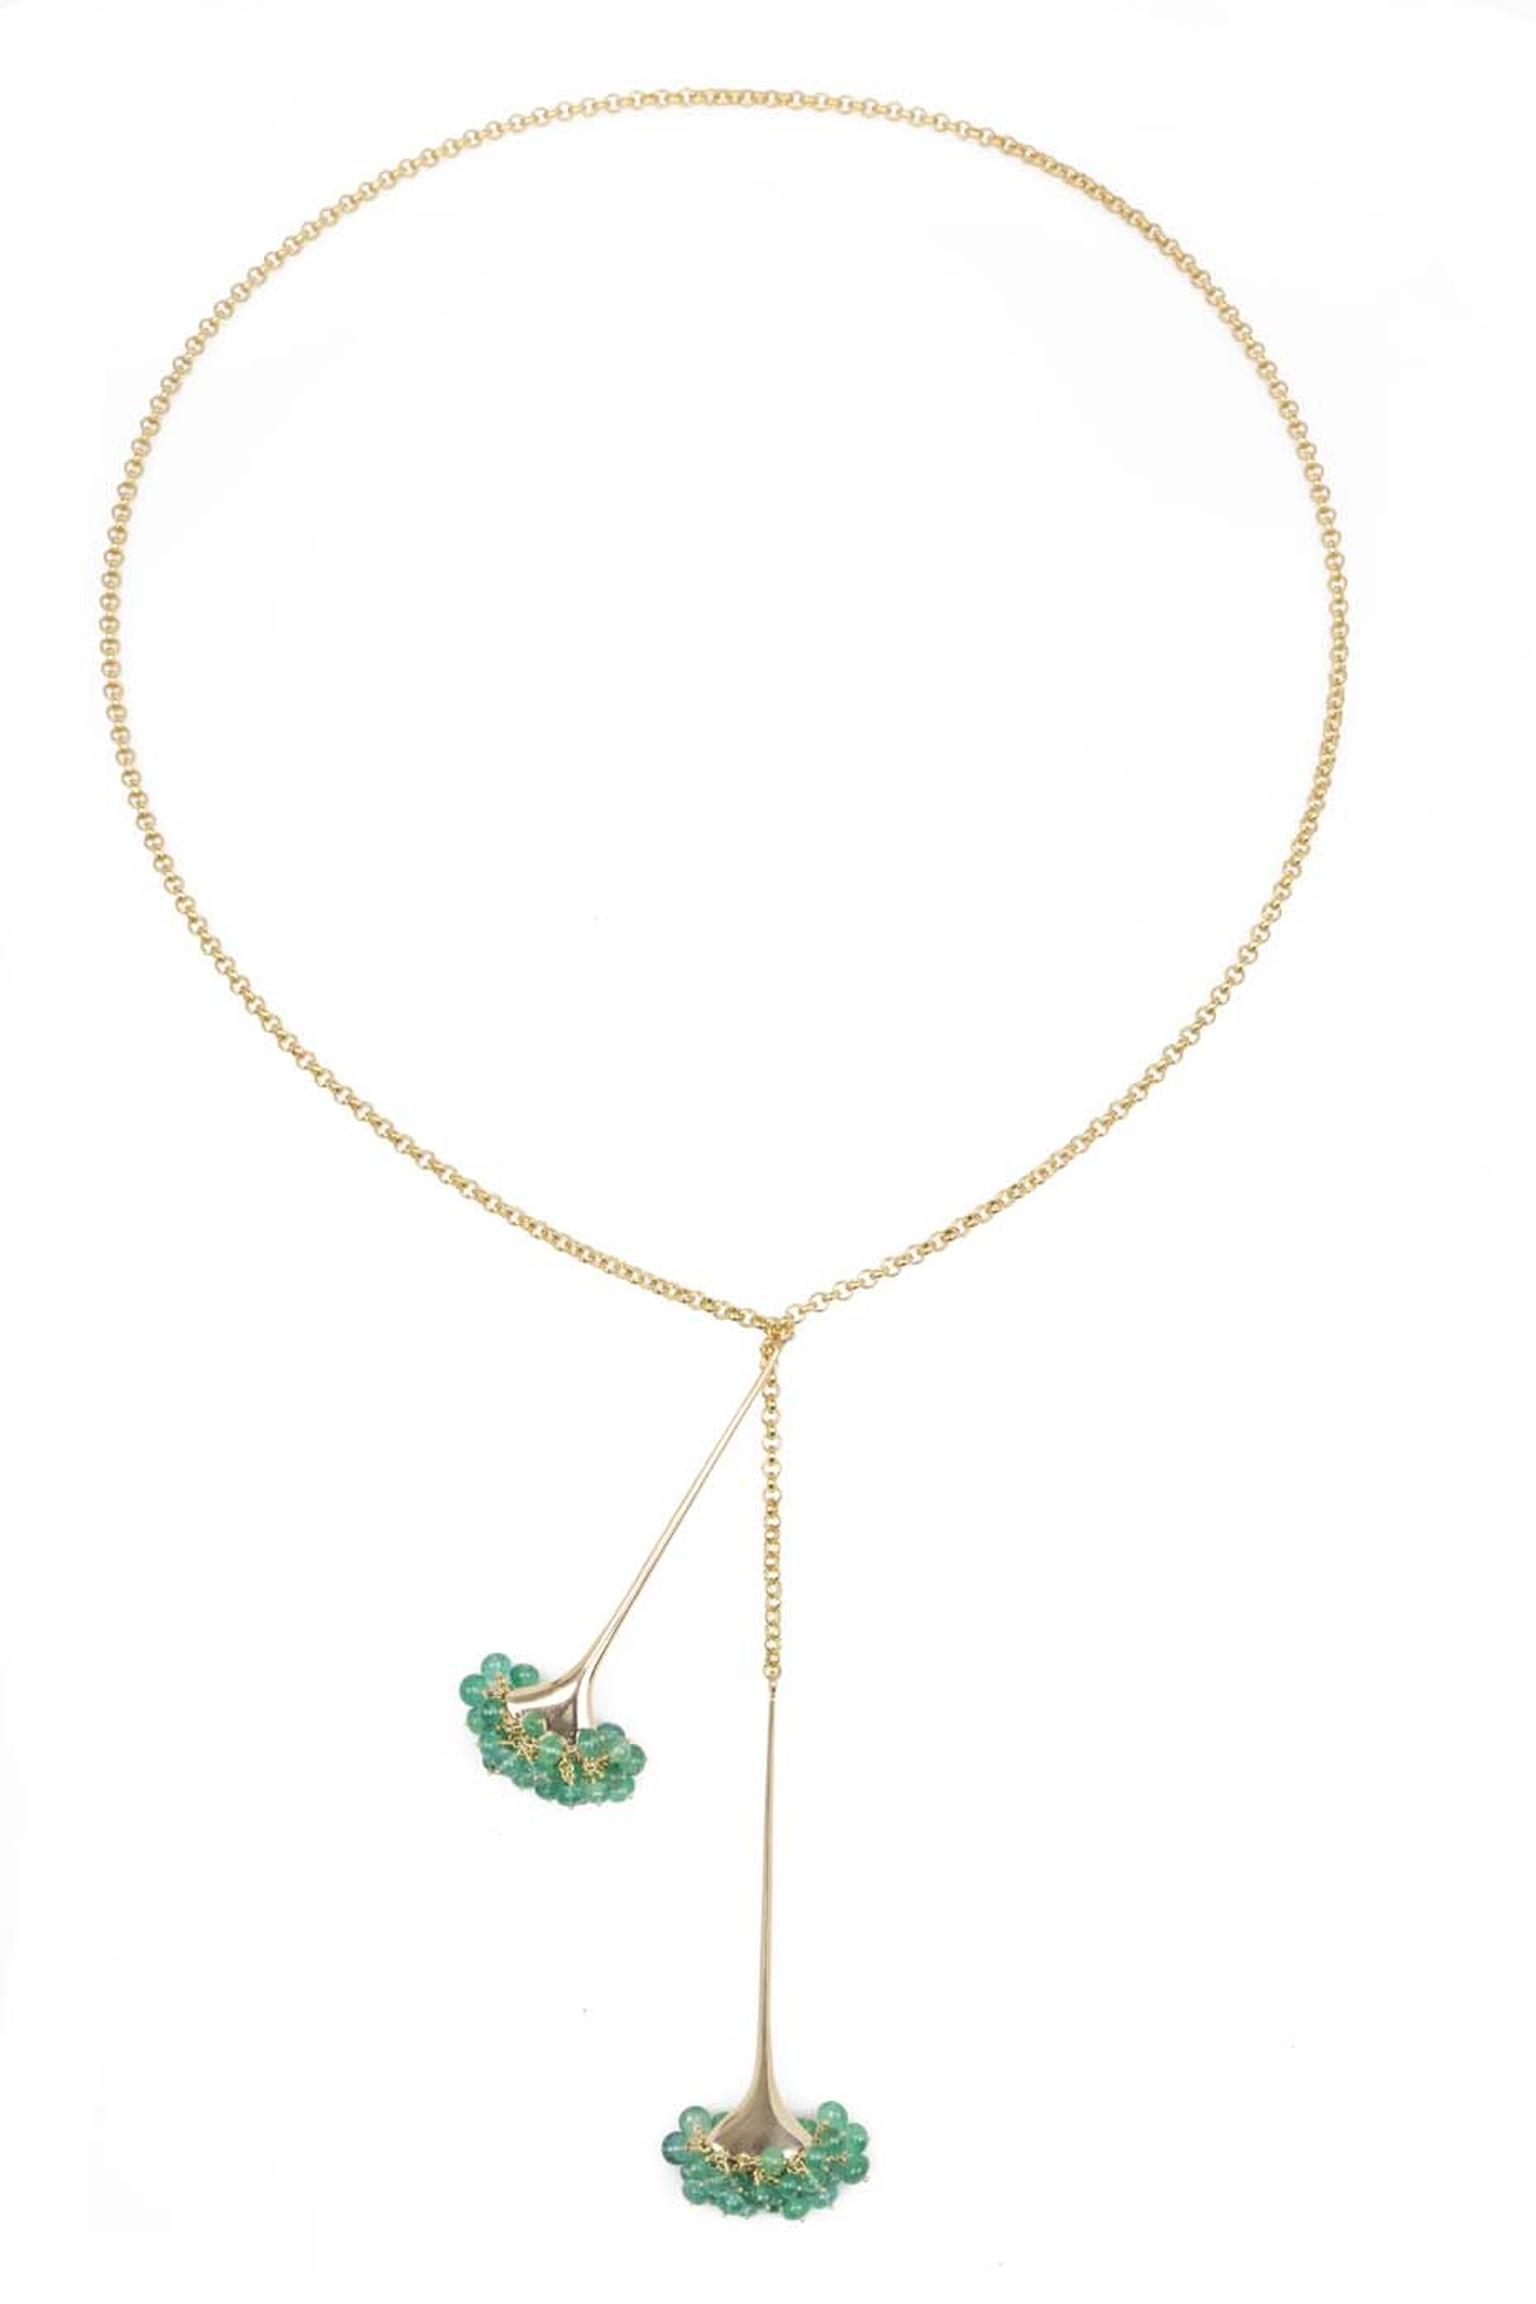 Gurmit Campbell gold Toga necklace featuring emerald beads.